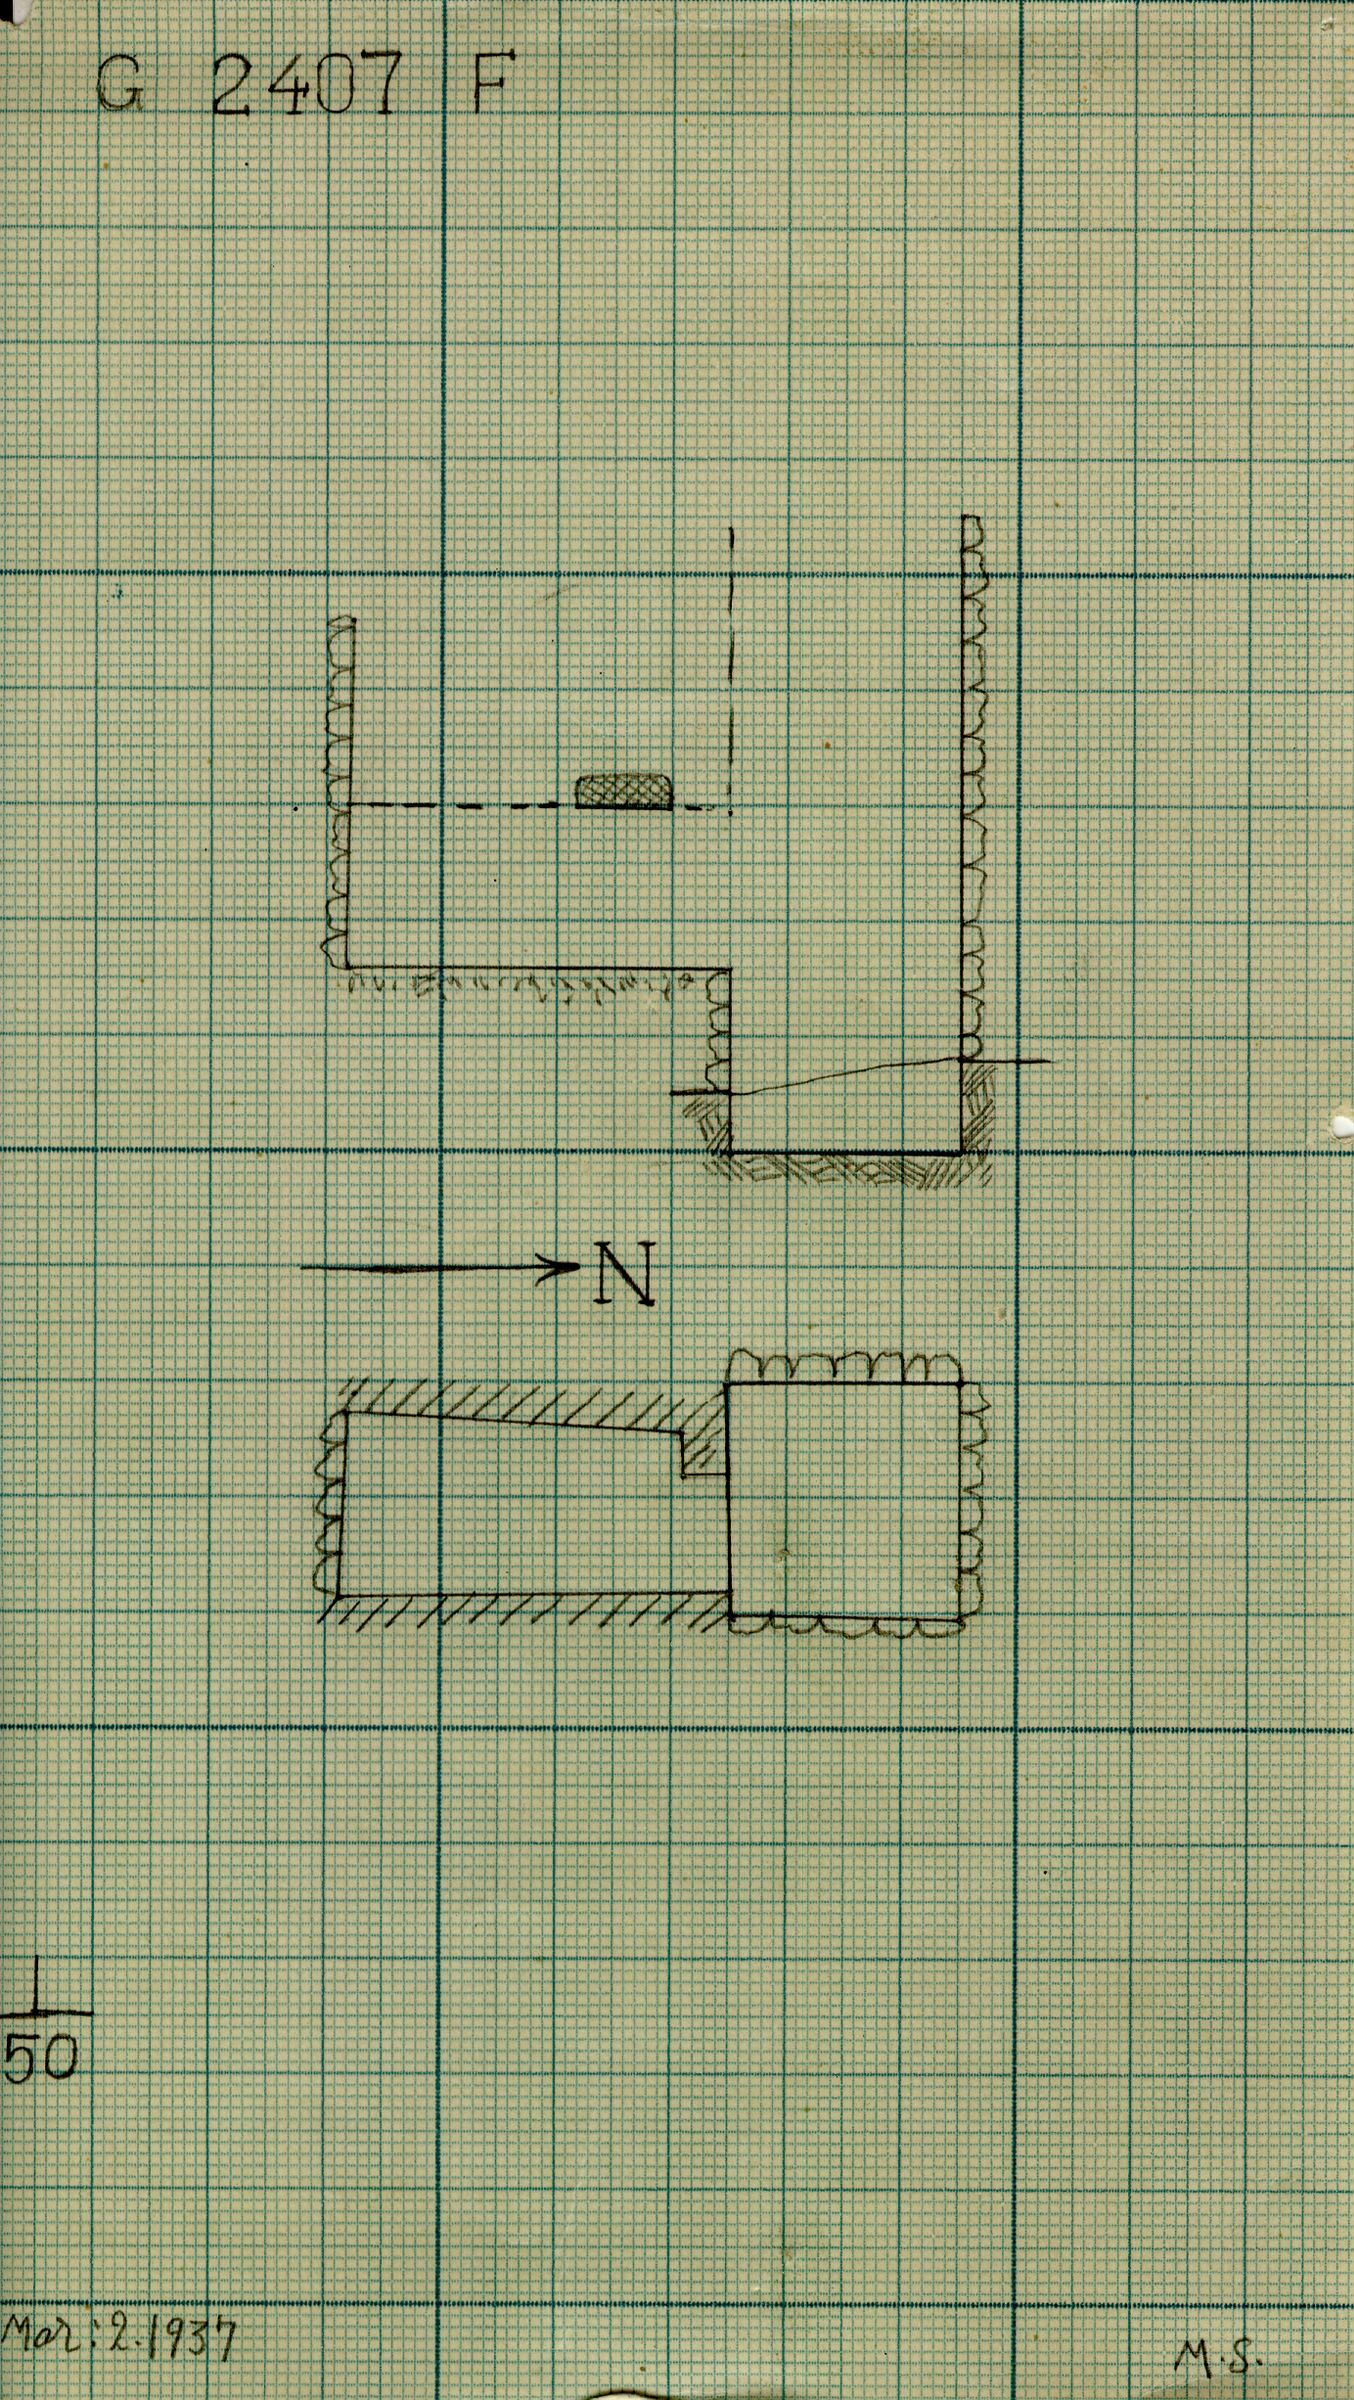 Maps and plans: G 2407, Shaft F